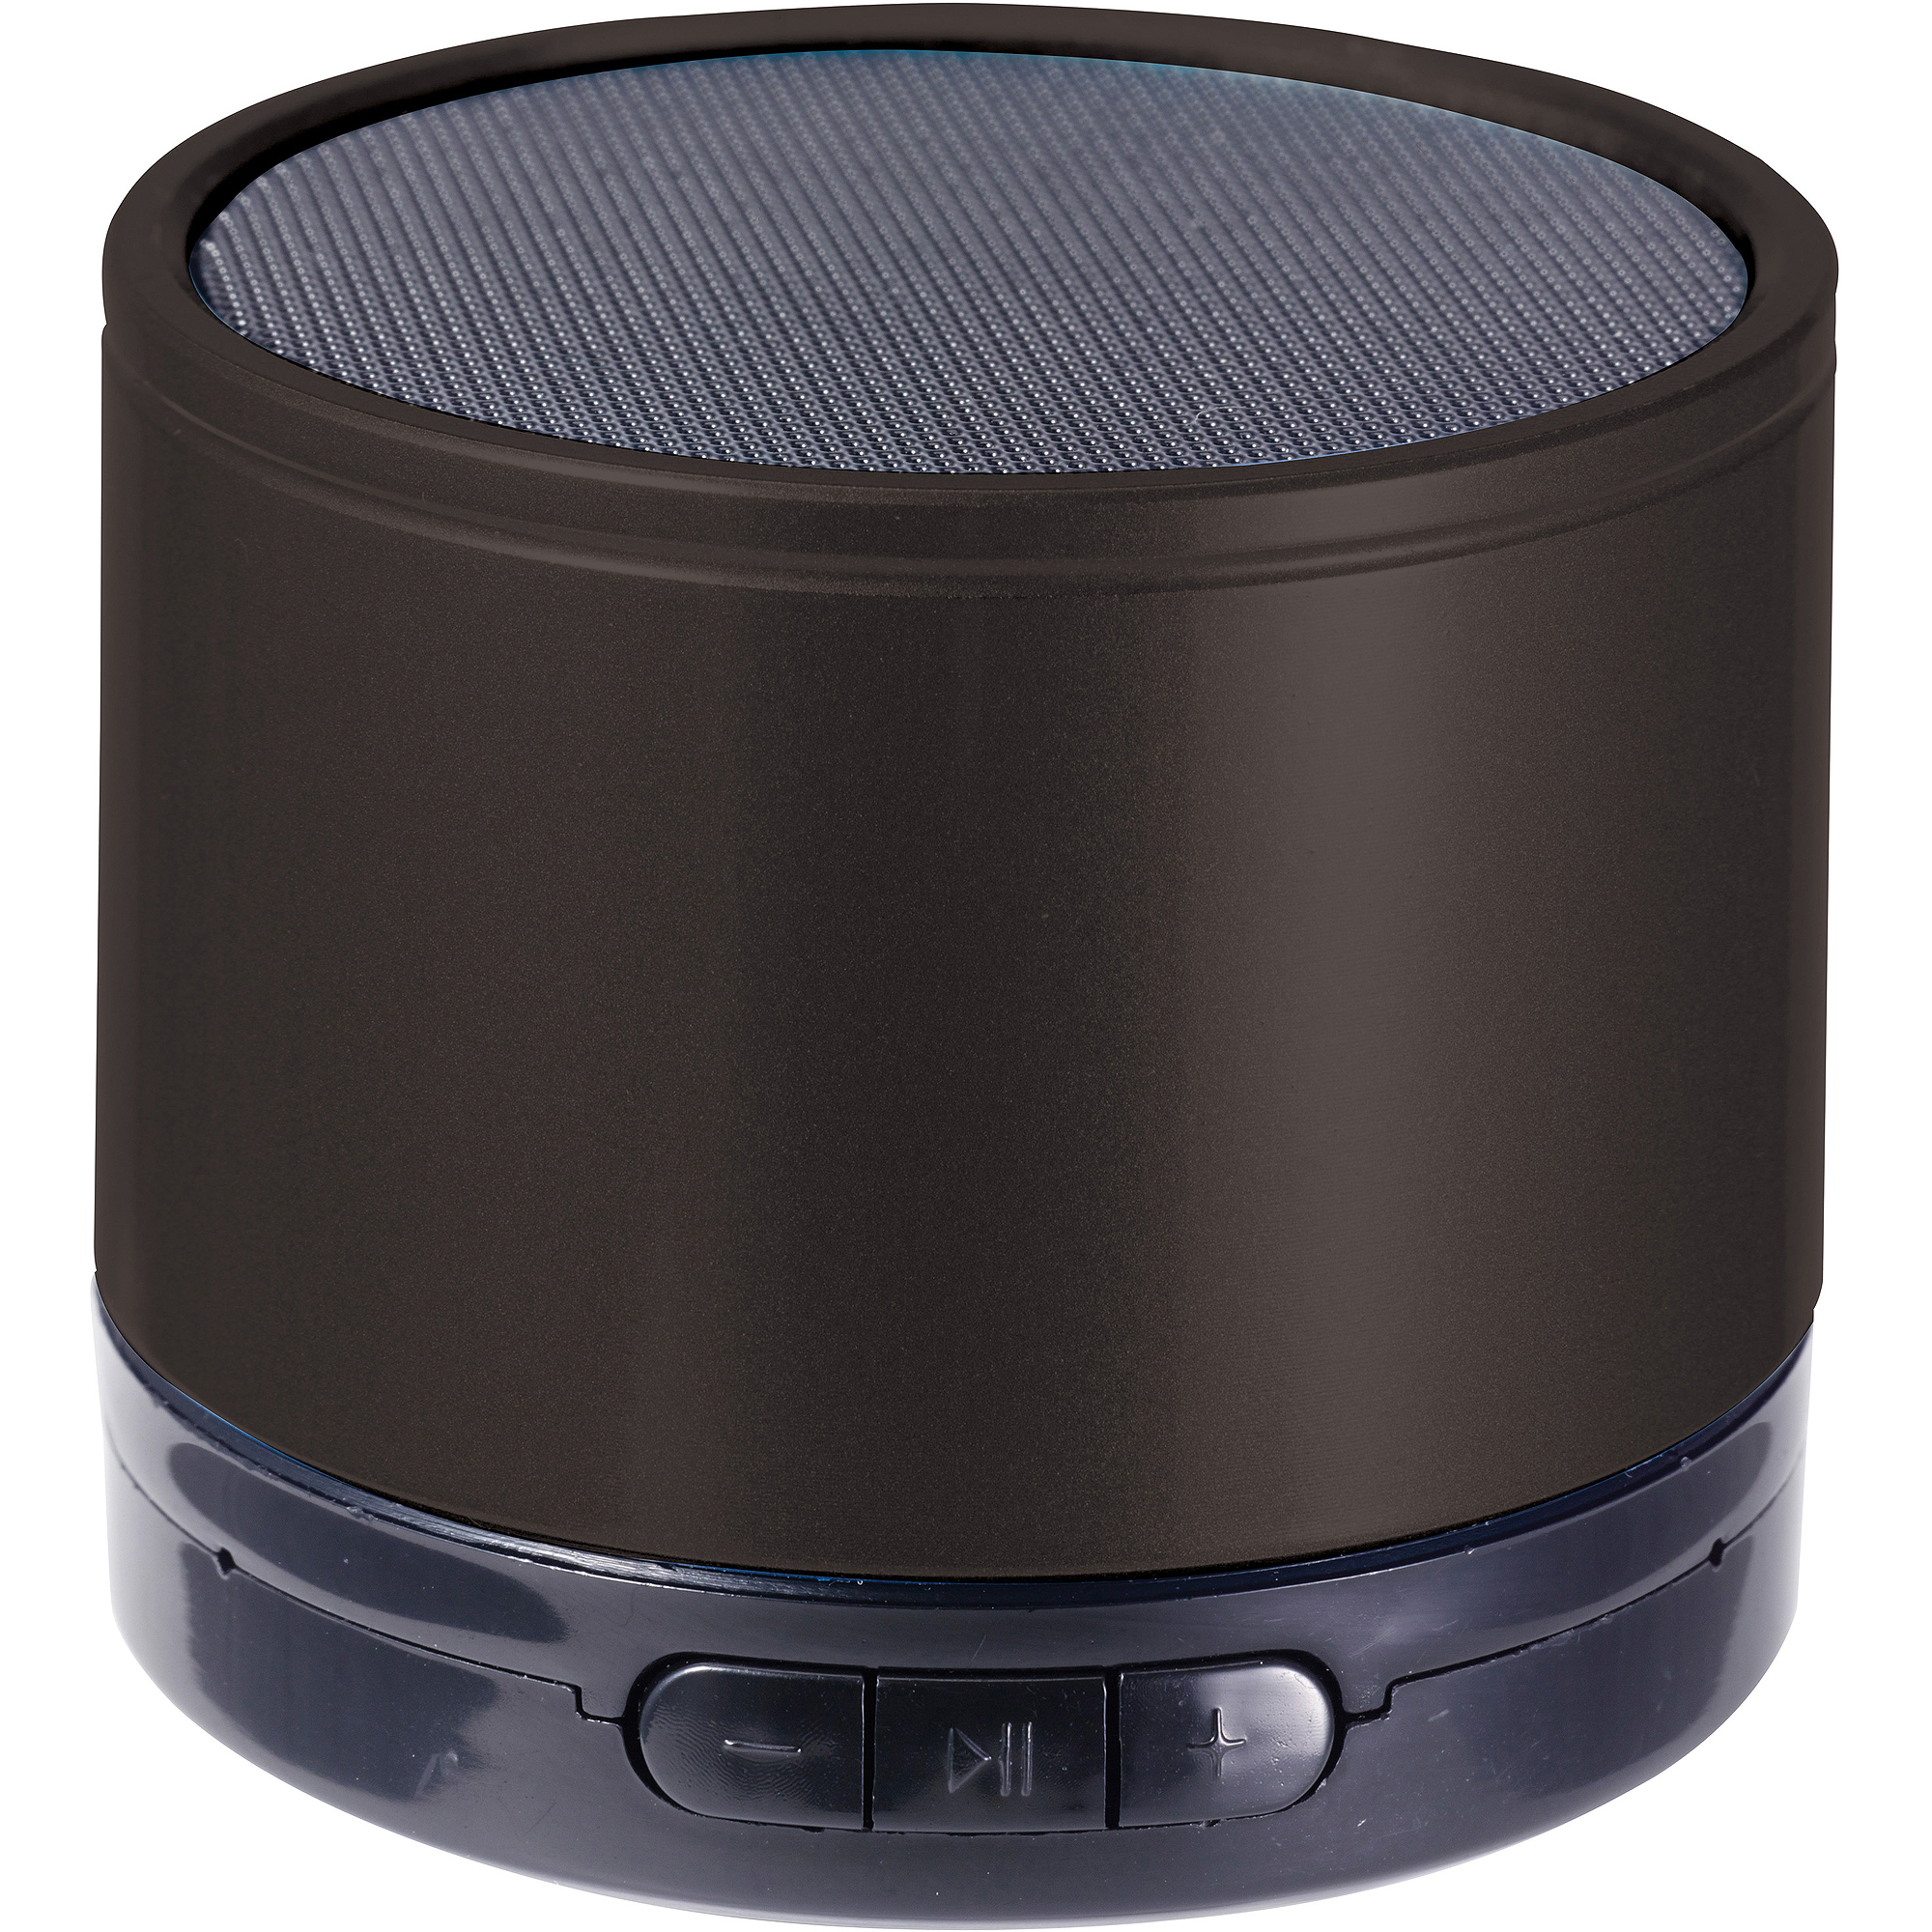 Craig CMA3568-BK Portable Speaker with Bluetooth Wireless Technology